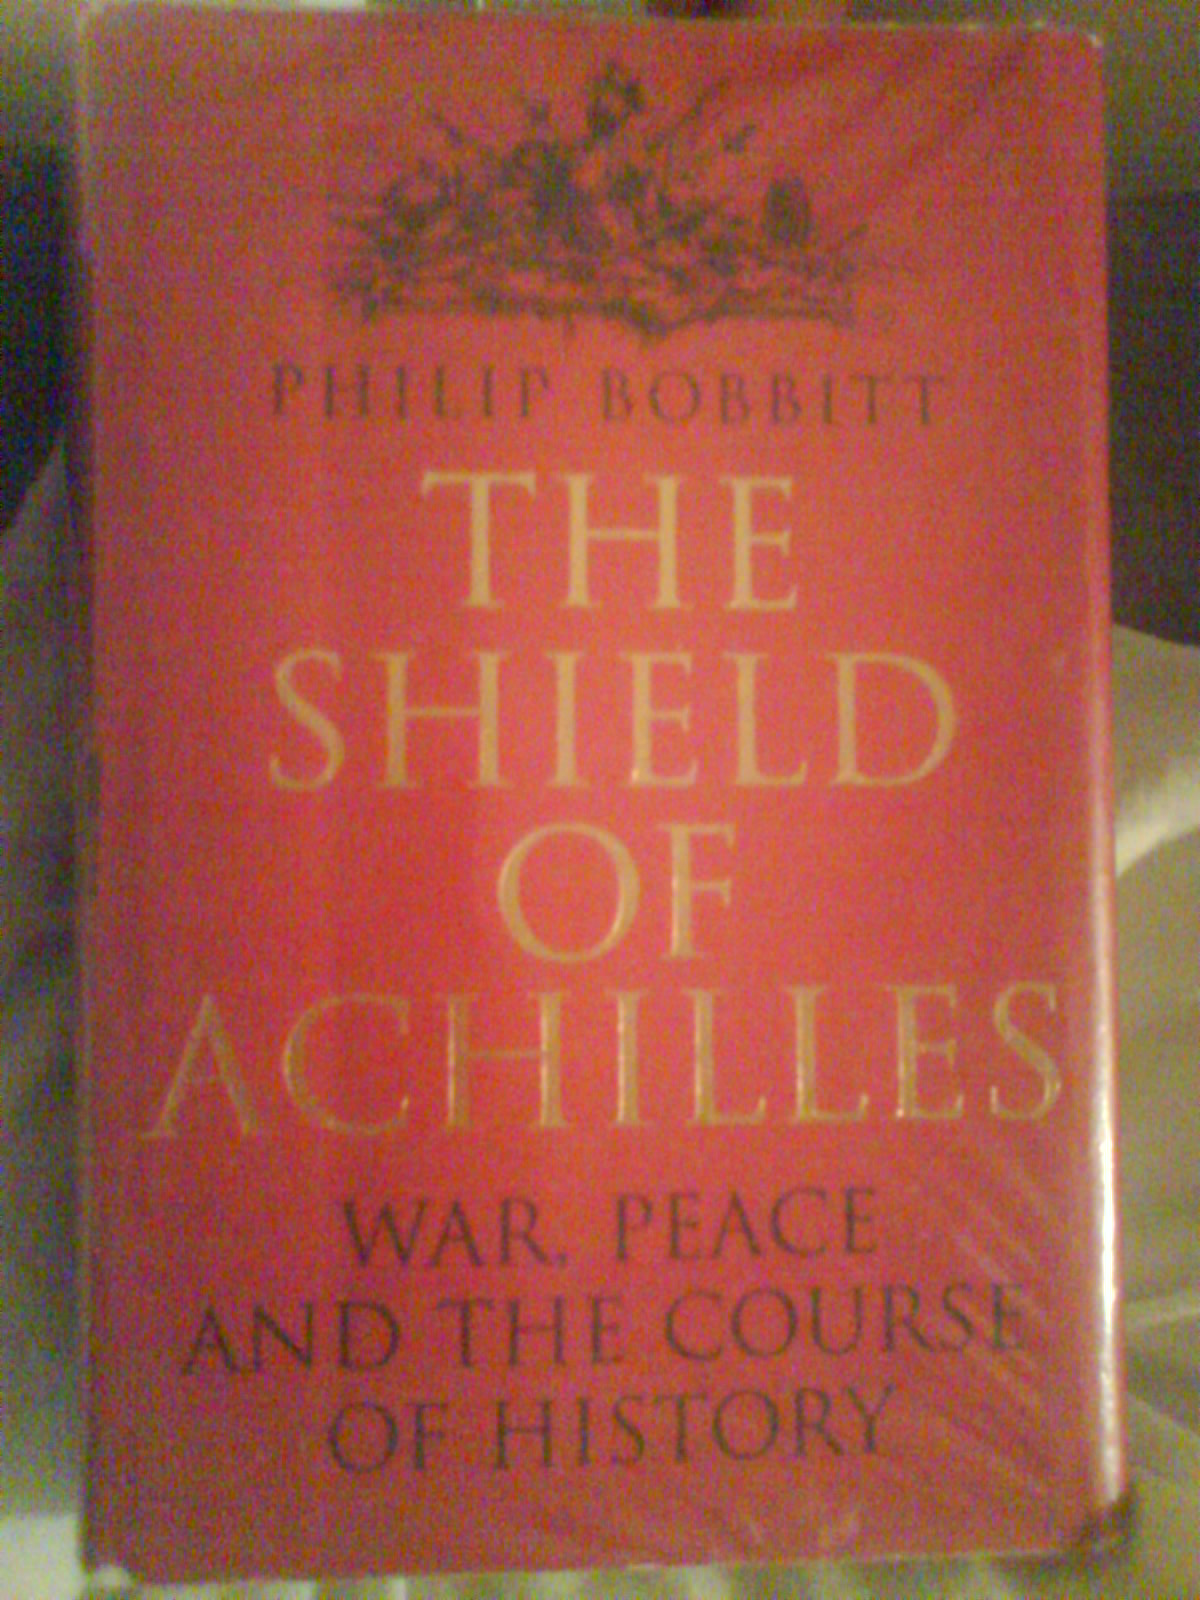 The Shield Of Achilles War Peace And The Course Of